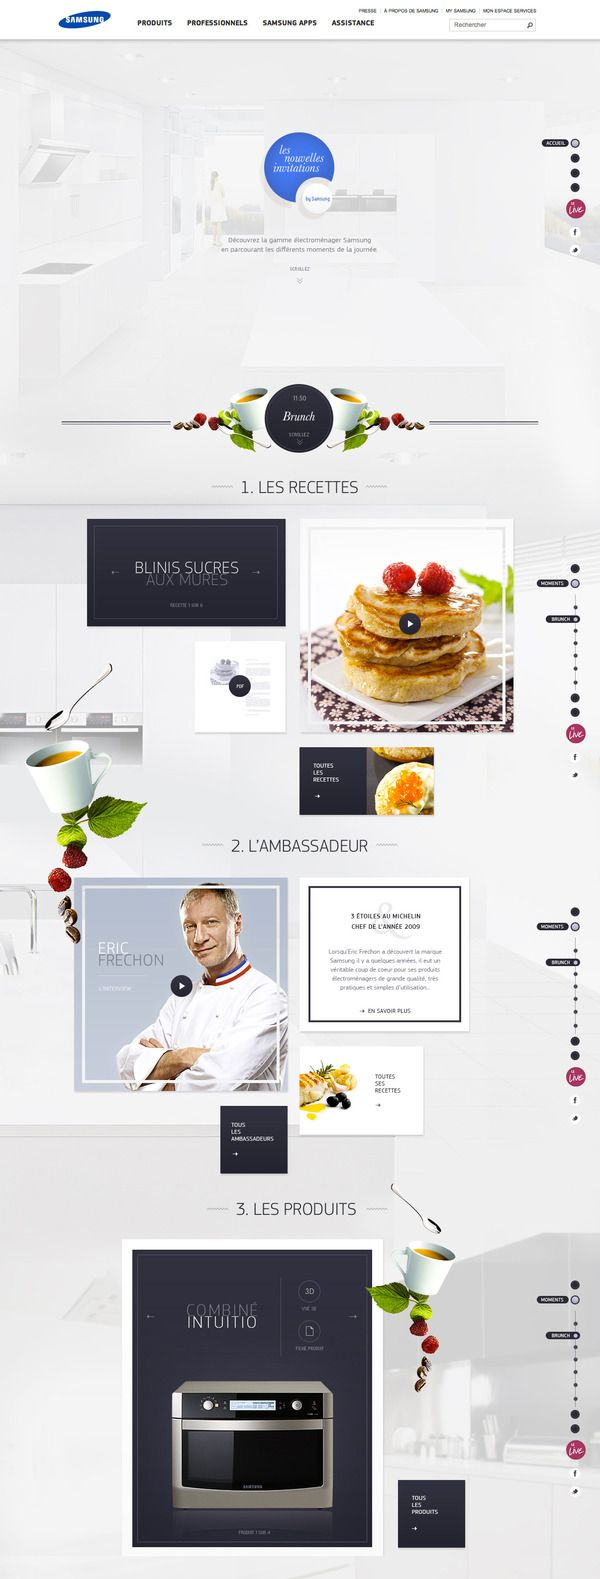 Nouvelles Invitations by #Samsung by yul, via #Behance #Webdesign